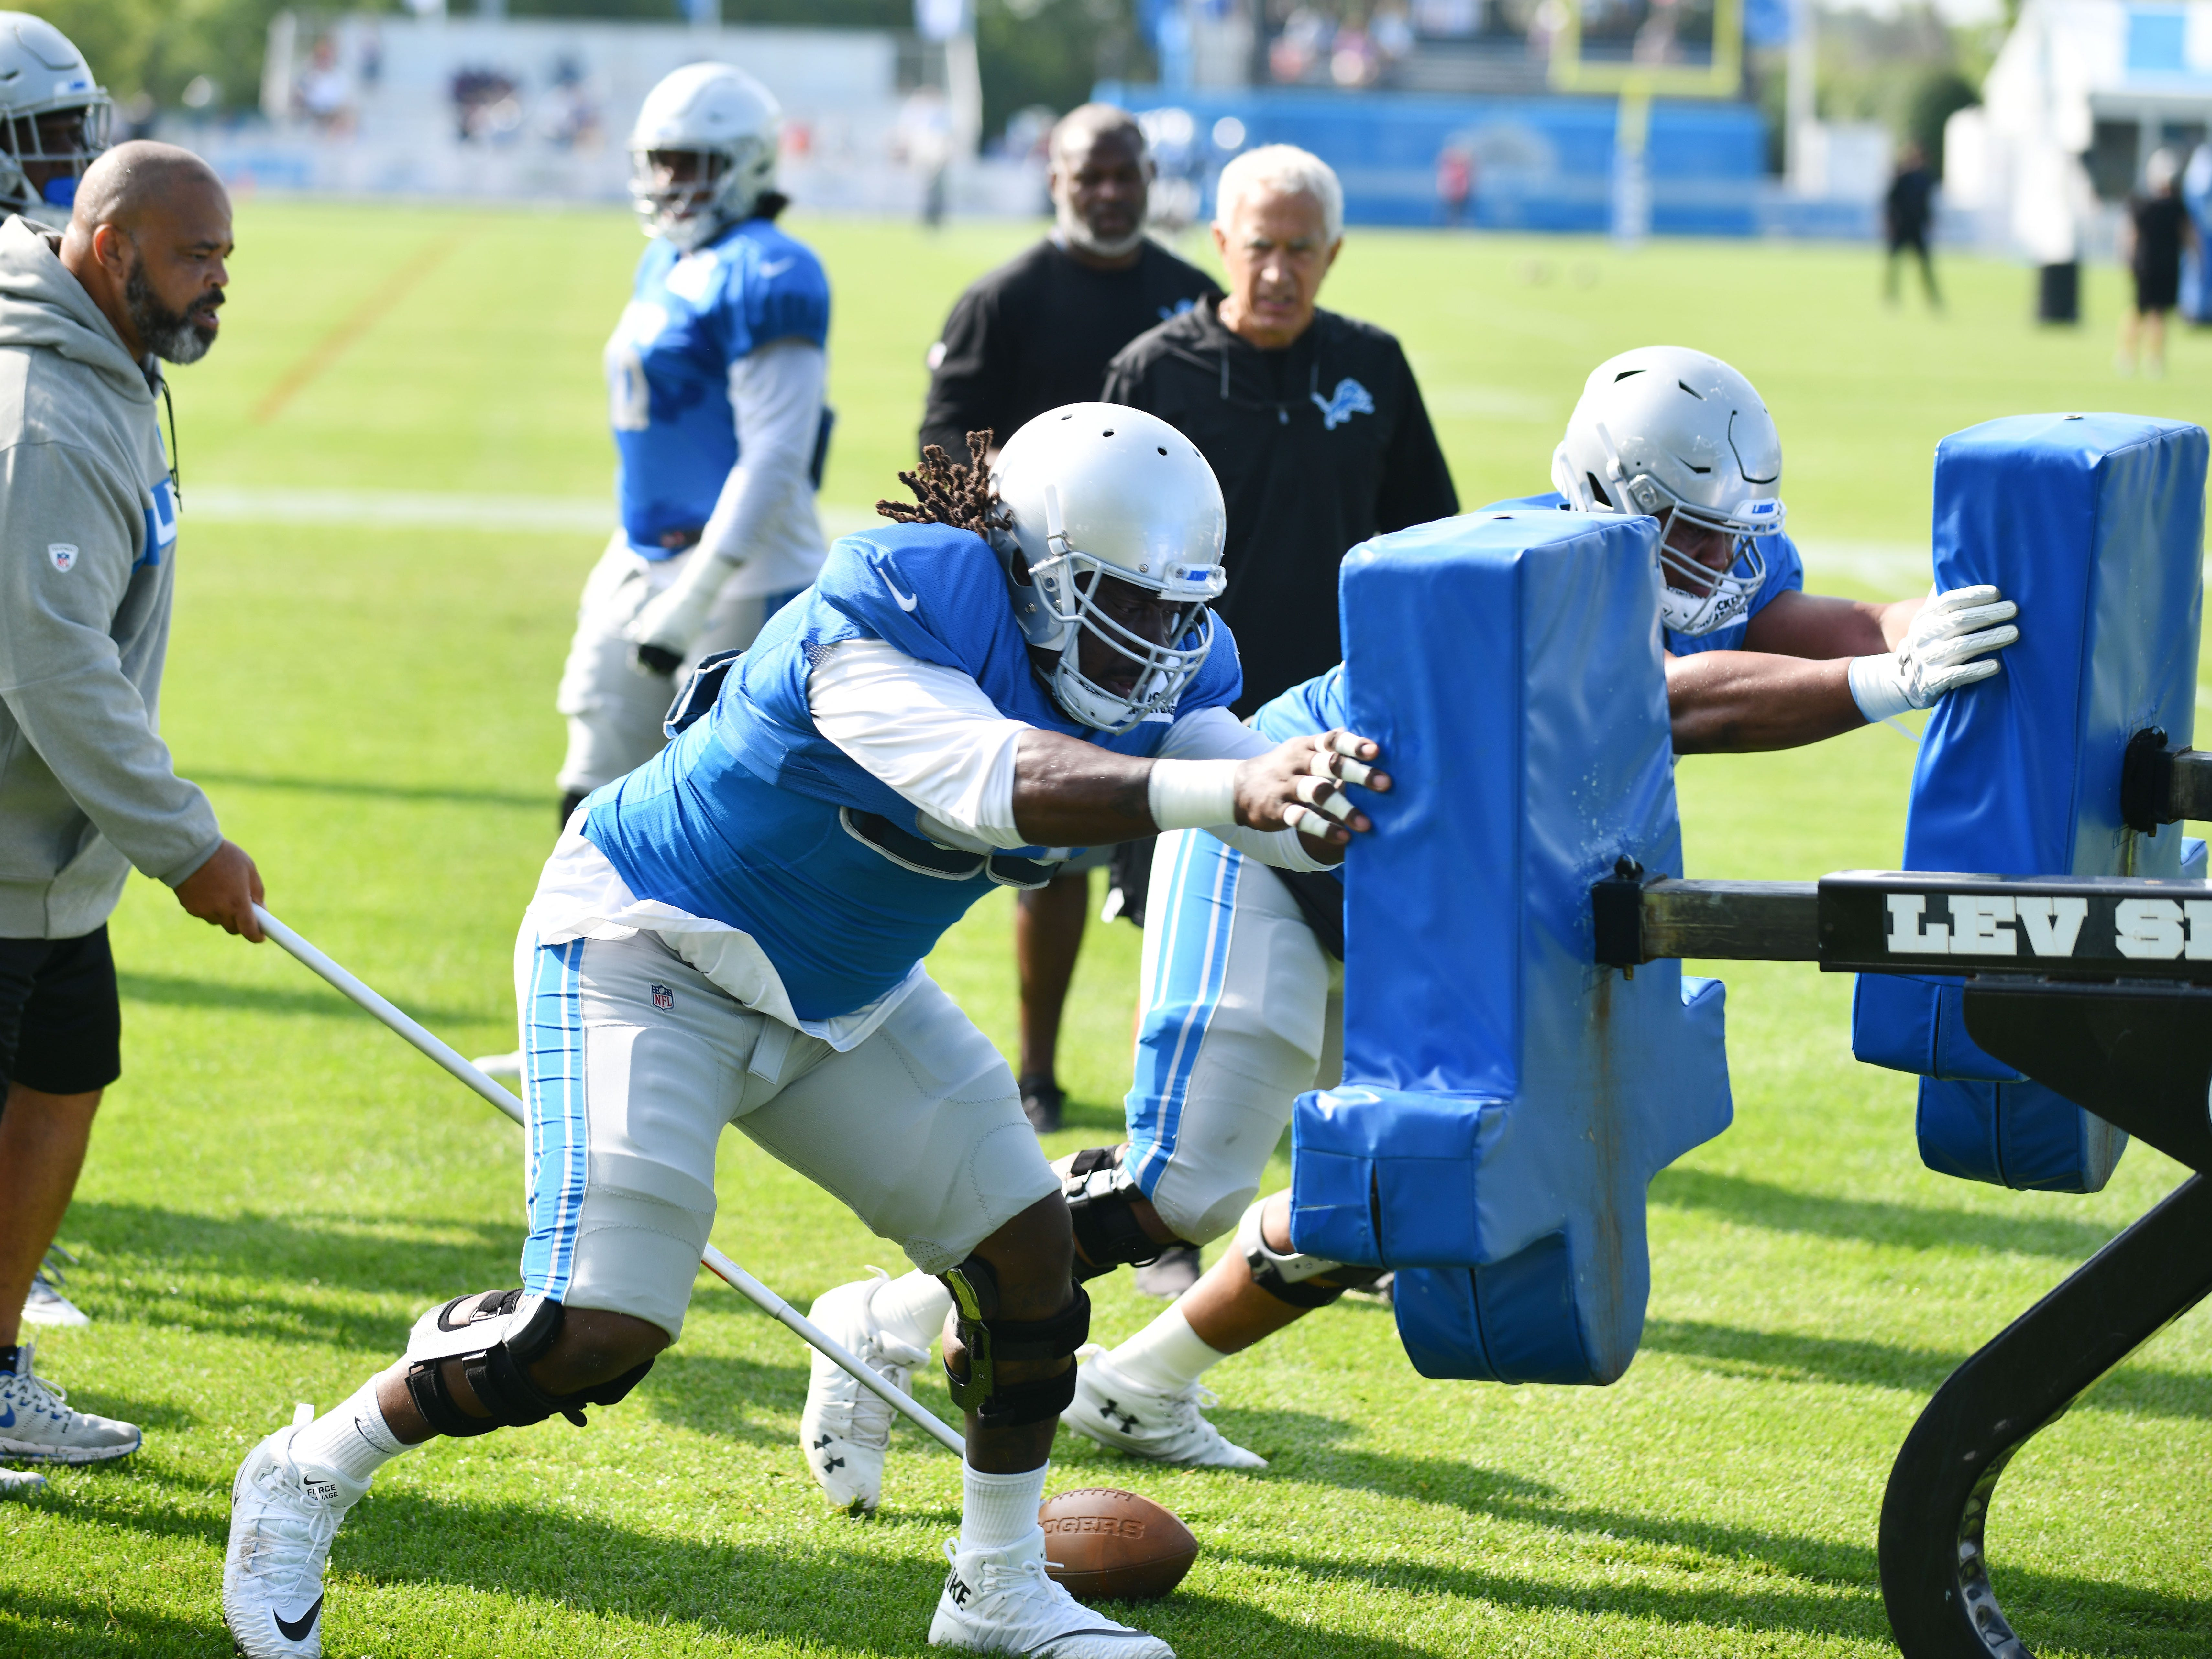 Lions defensive tackles Ricky Jean Francois and Jeremiah Ledbetter hit the sled during drills.